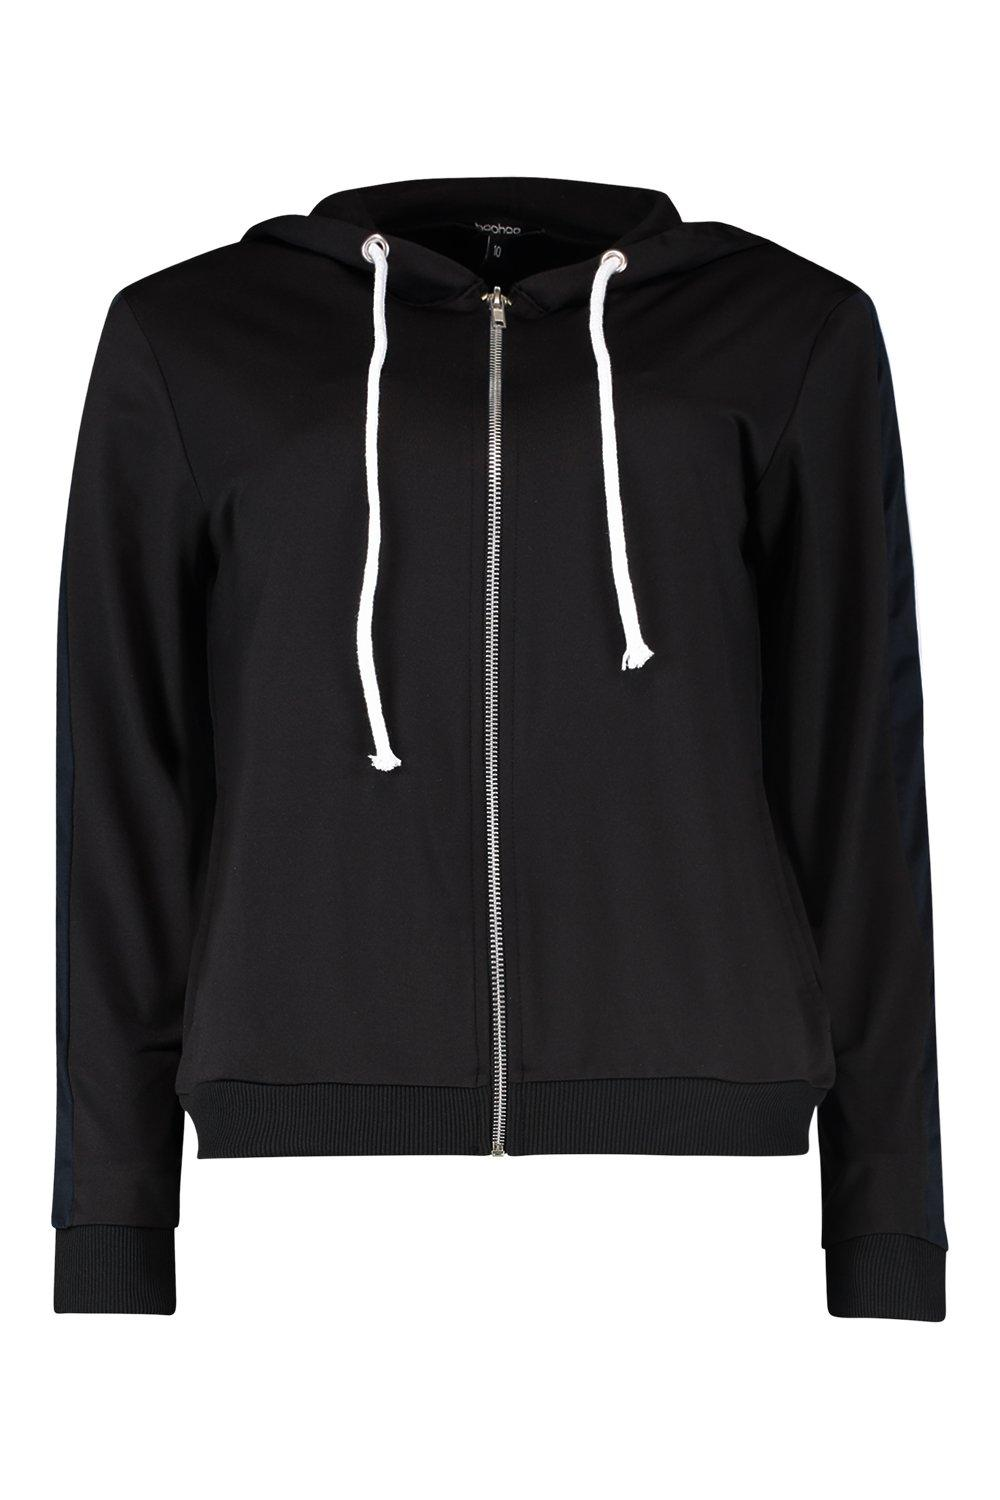 Through Tricot black Hoody Zip Panelled XnnzgY